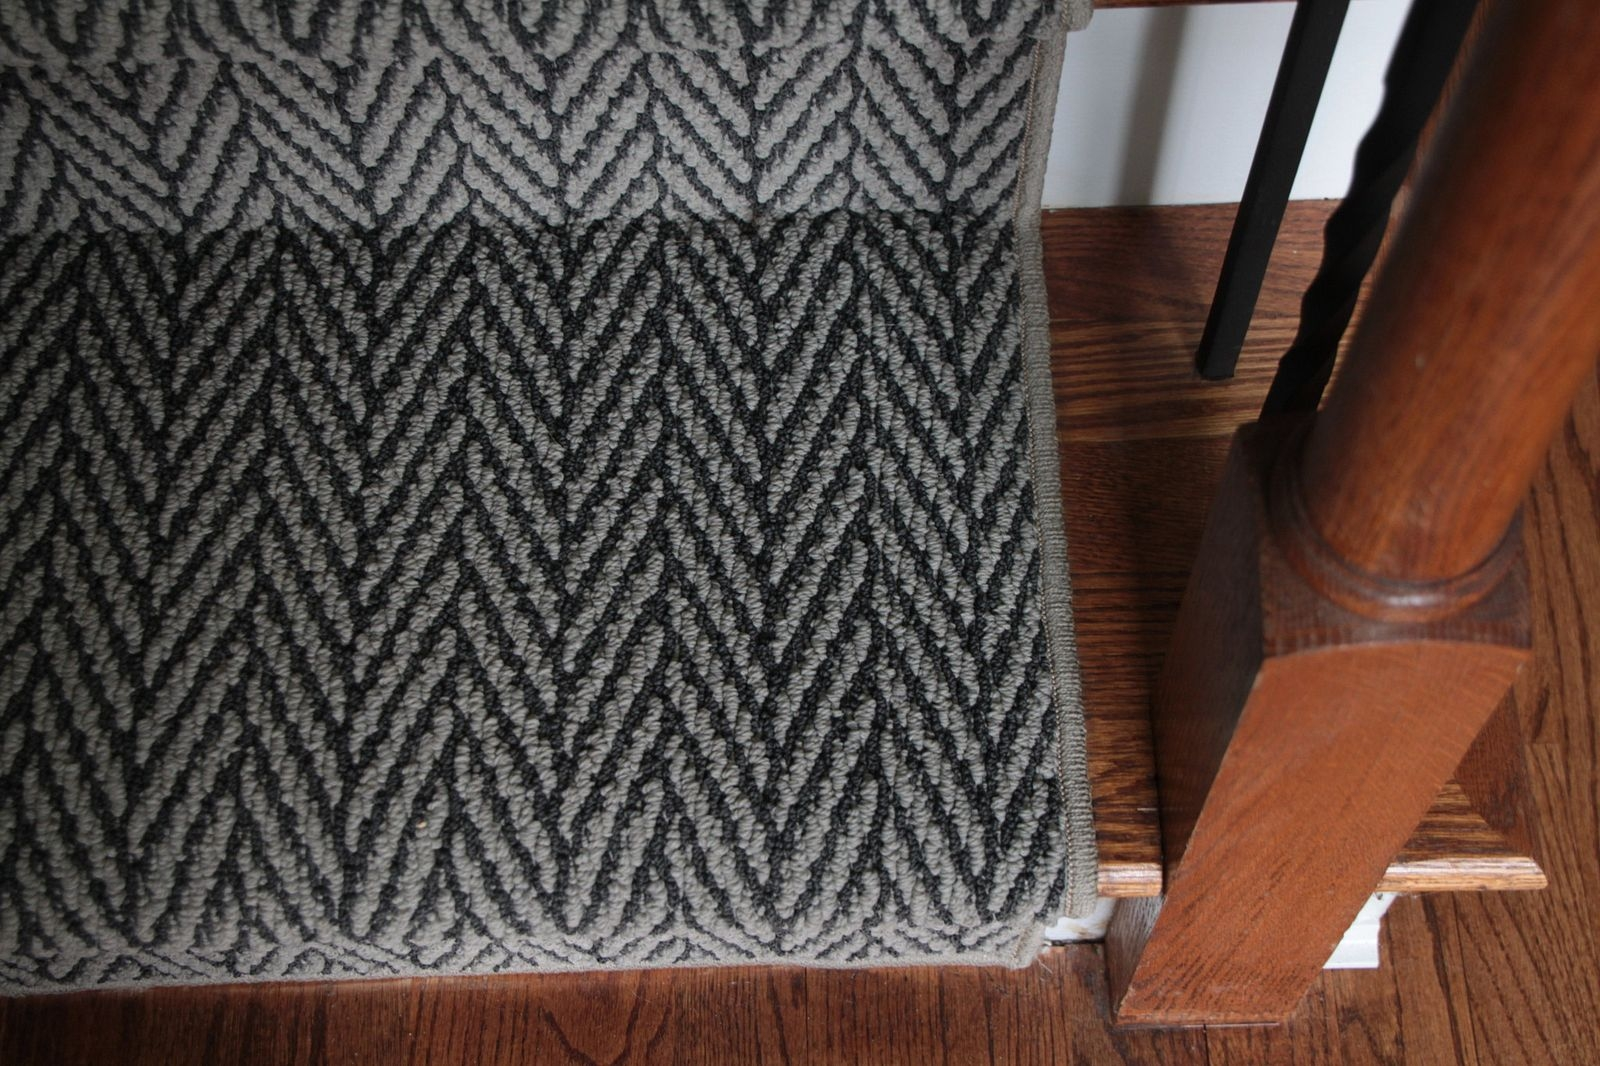 Floor Design Shaw Designers Change How You See Floors Shaw   Industrial Carpet For Stairs   Shaw Floors   Persian Carpet   Stair Railing   Carpet Workroom   Handrail